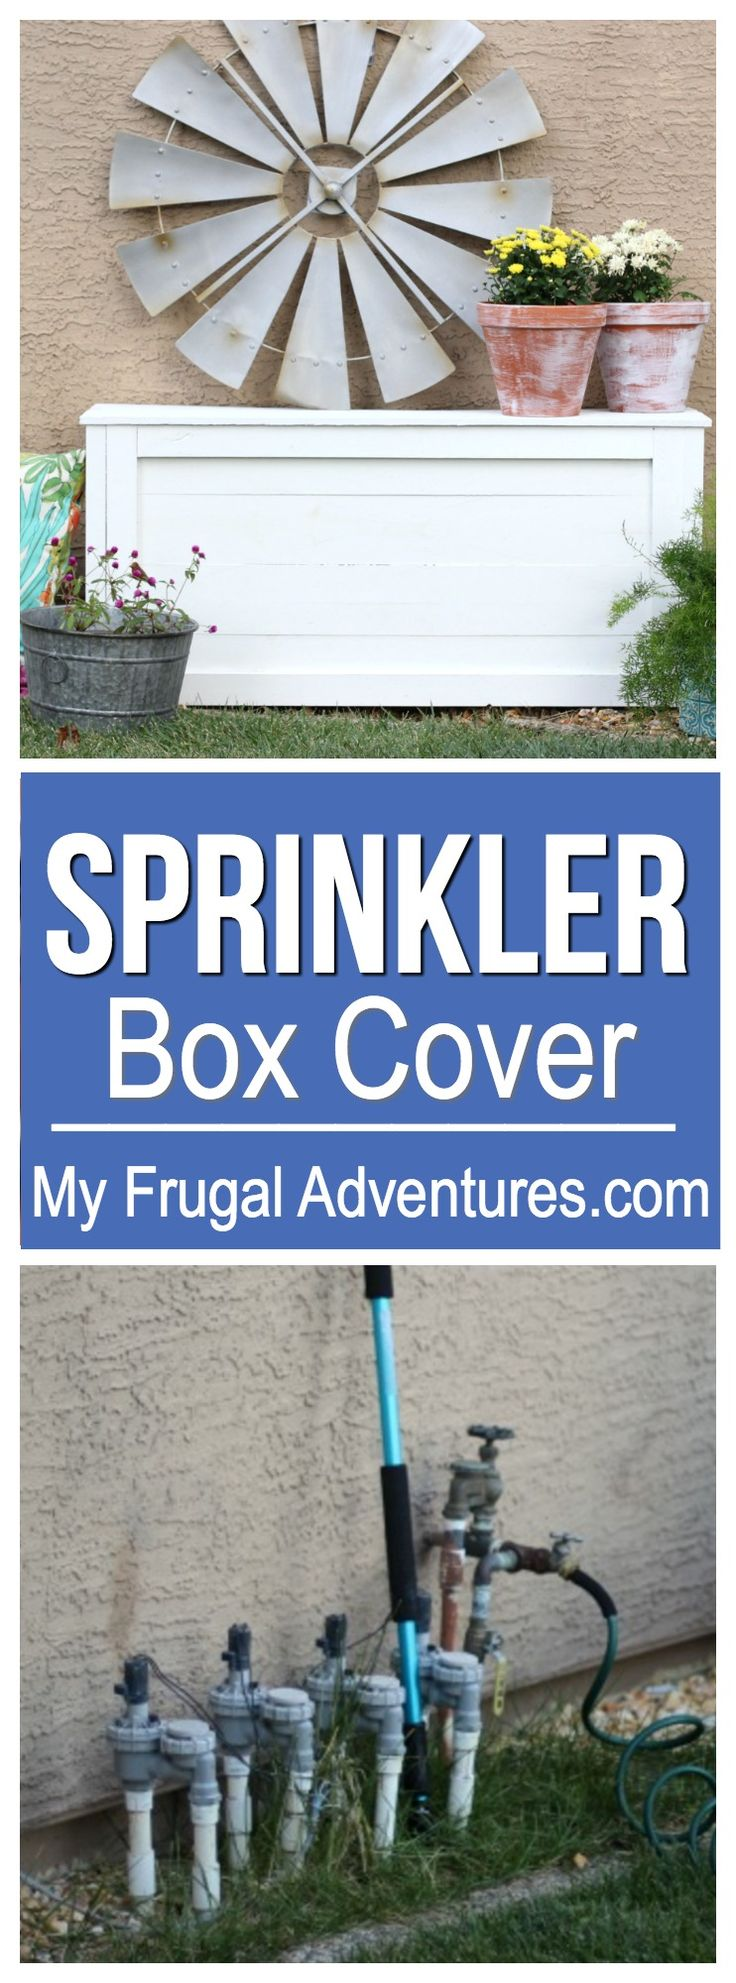 Hide those ugly sprinkler valves with this simple, lightweight cover.  Small project that makes a big difference.